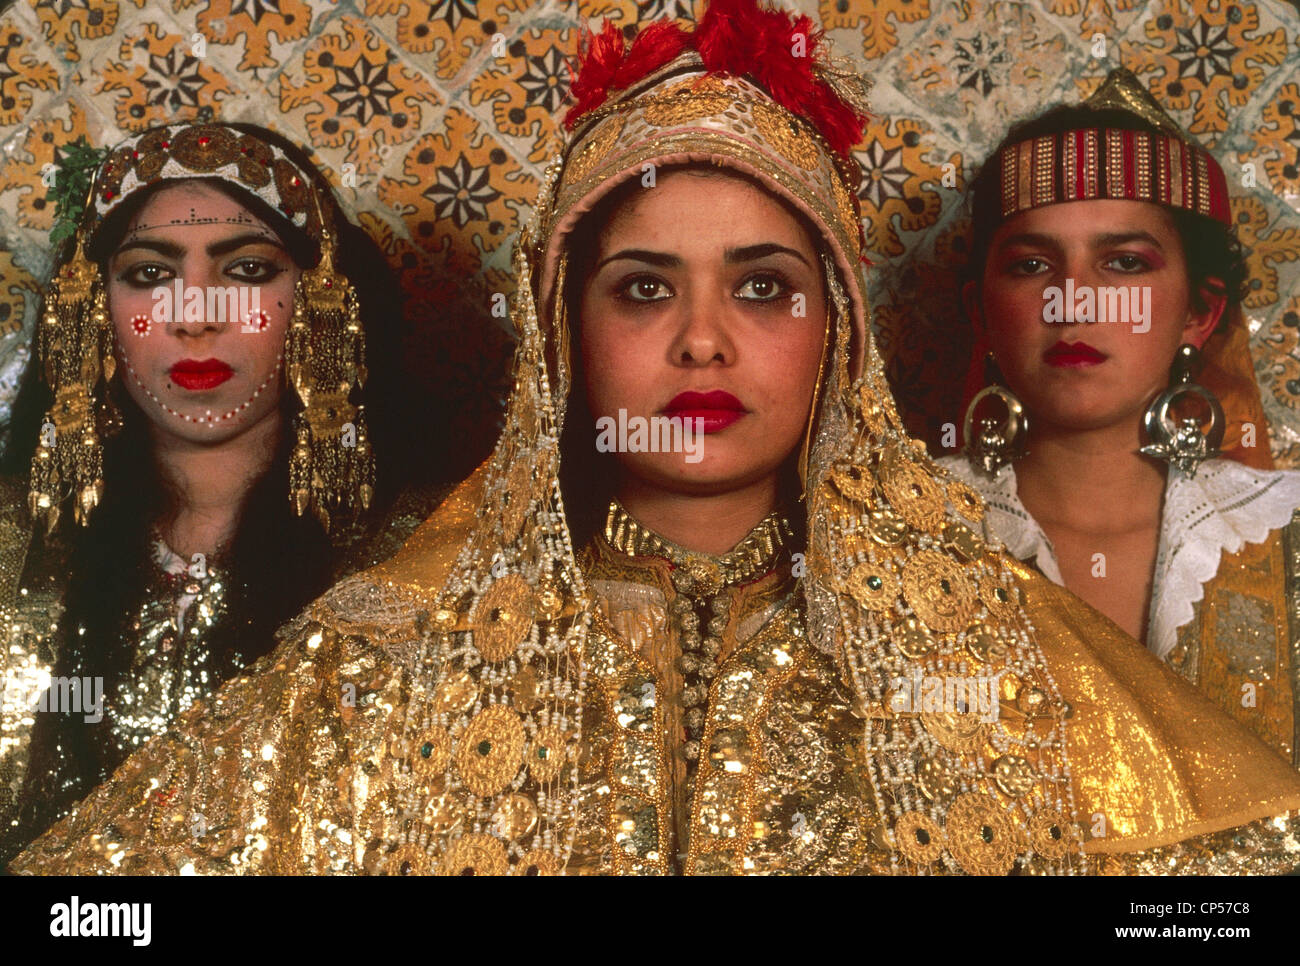 Tunisia, Tunis. Woman wearing the traditional Muslim marriage dress ...